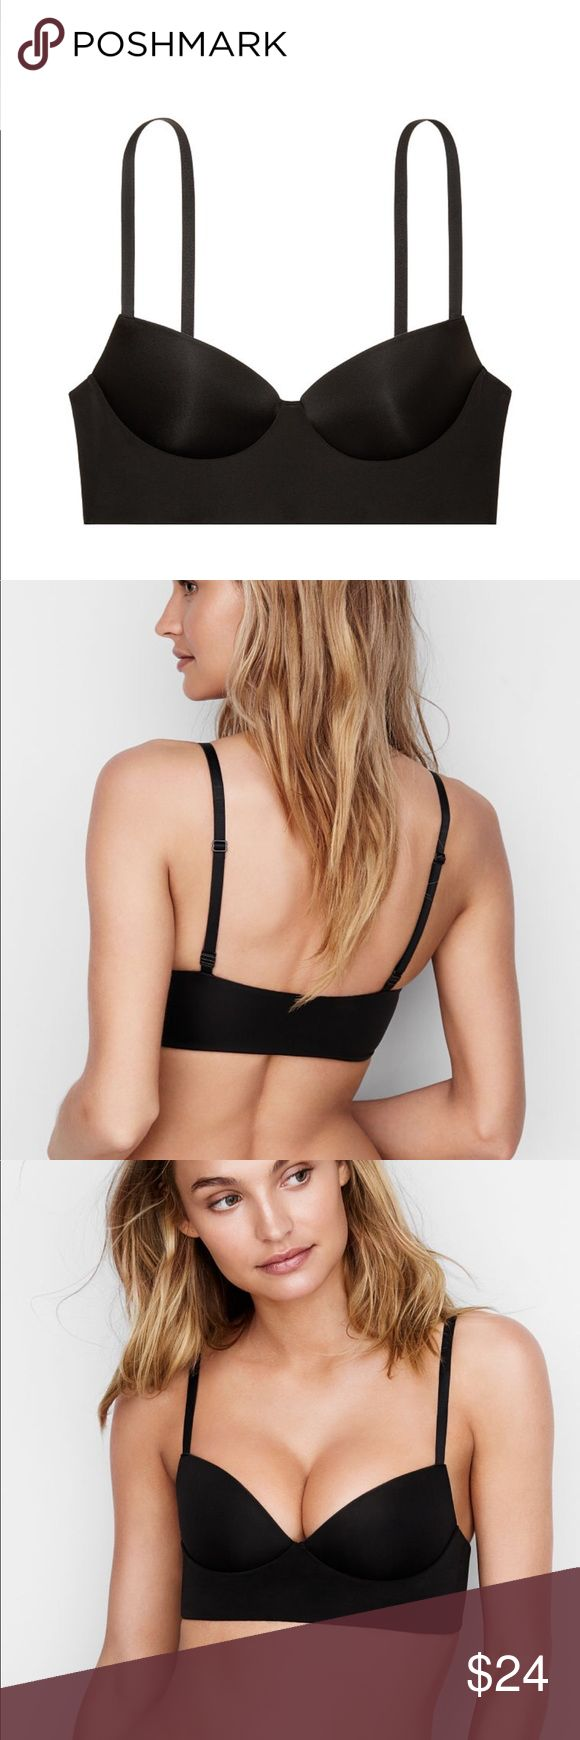 NWT Victoria's Secret Push-up Bralette NWT Victoria's Secret Push-up Bralette Size: XL (38D, 40B, 40C, 40D) Color:Black         Soft, smooth and simply sexy, this push-up adds lift without the wires  Lift & Lining: Push-up padding Wireless cups  Straps & Hooks: Adjustable straps Pullover style  Details & Fabric: nylon/spandex/polyester         Imported         Condition: New with Tags Victoria's Secret Intimates & Sleepwear Bras